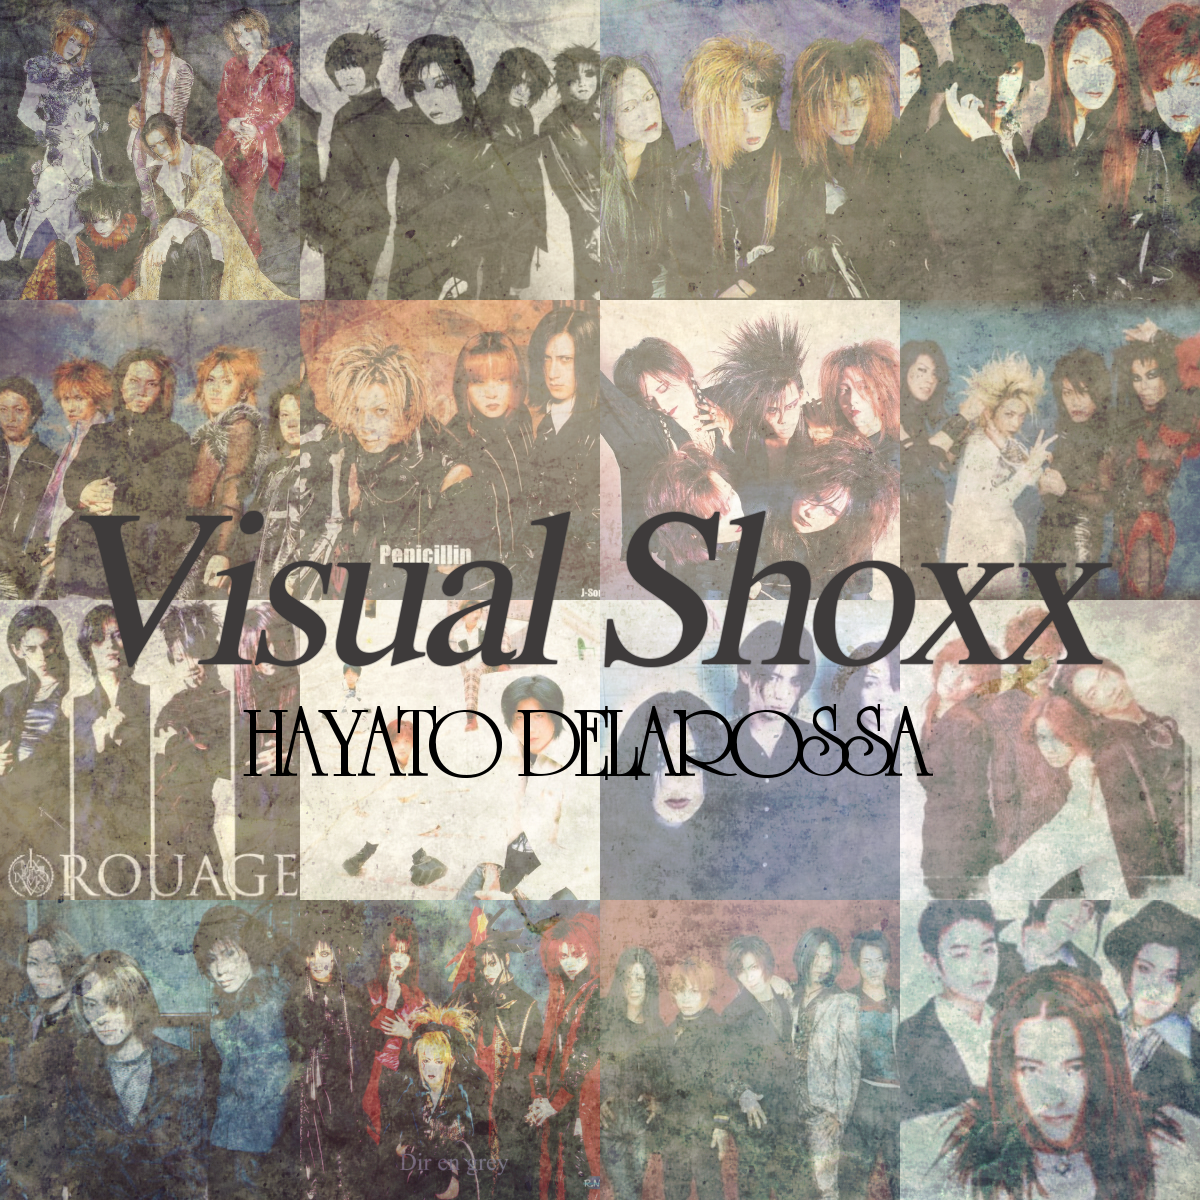 Visual Shoxx track list